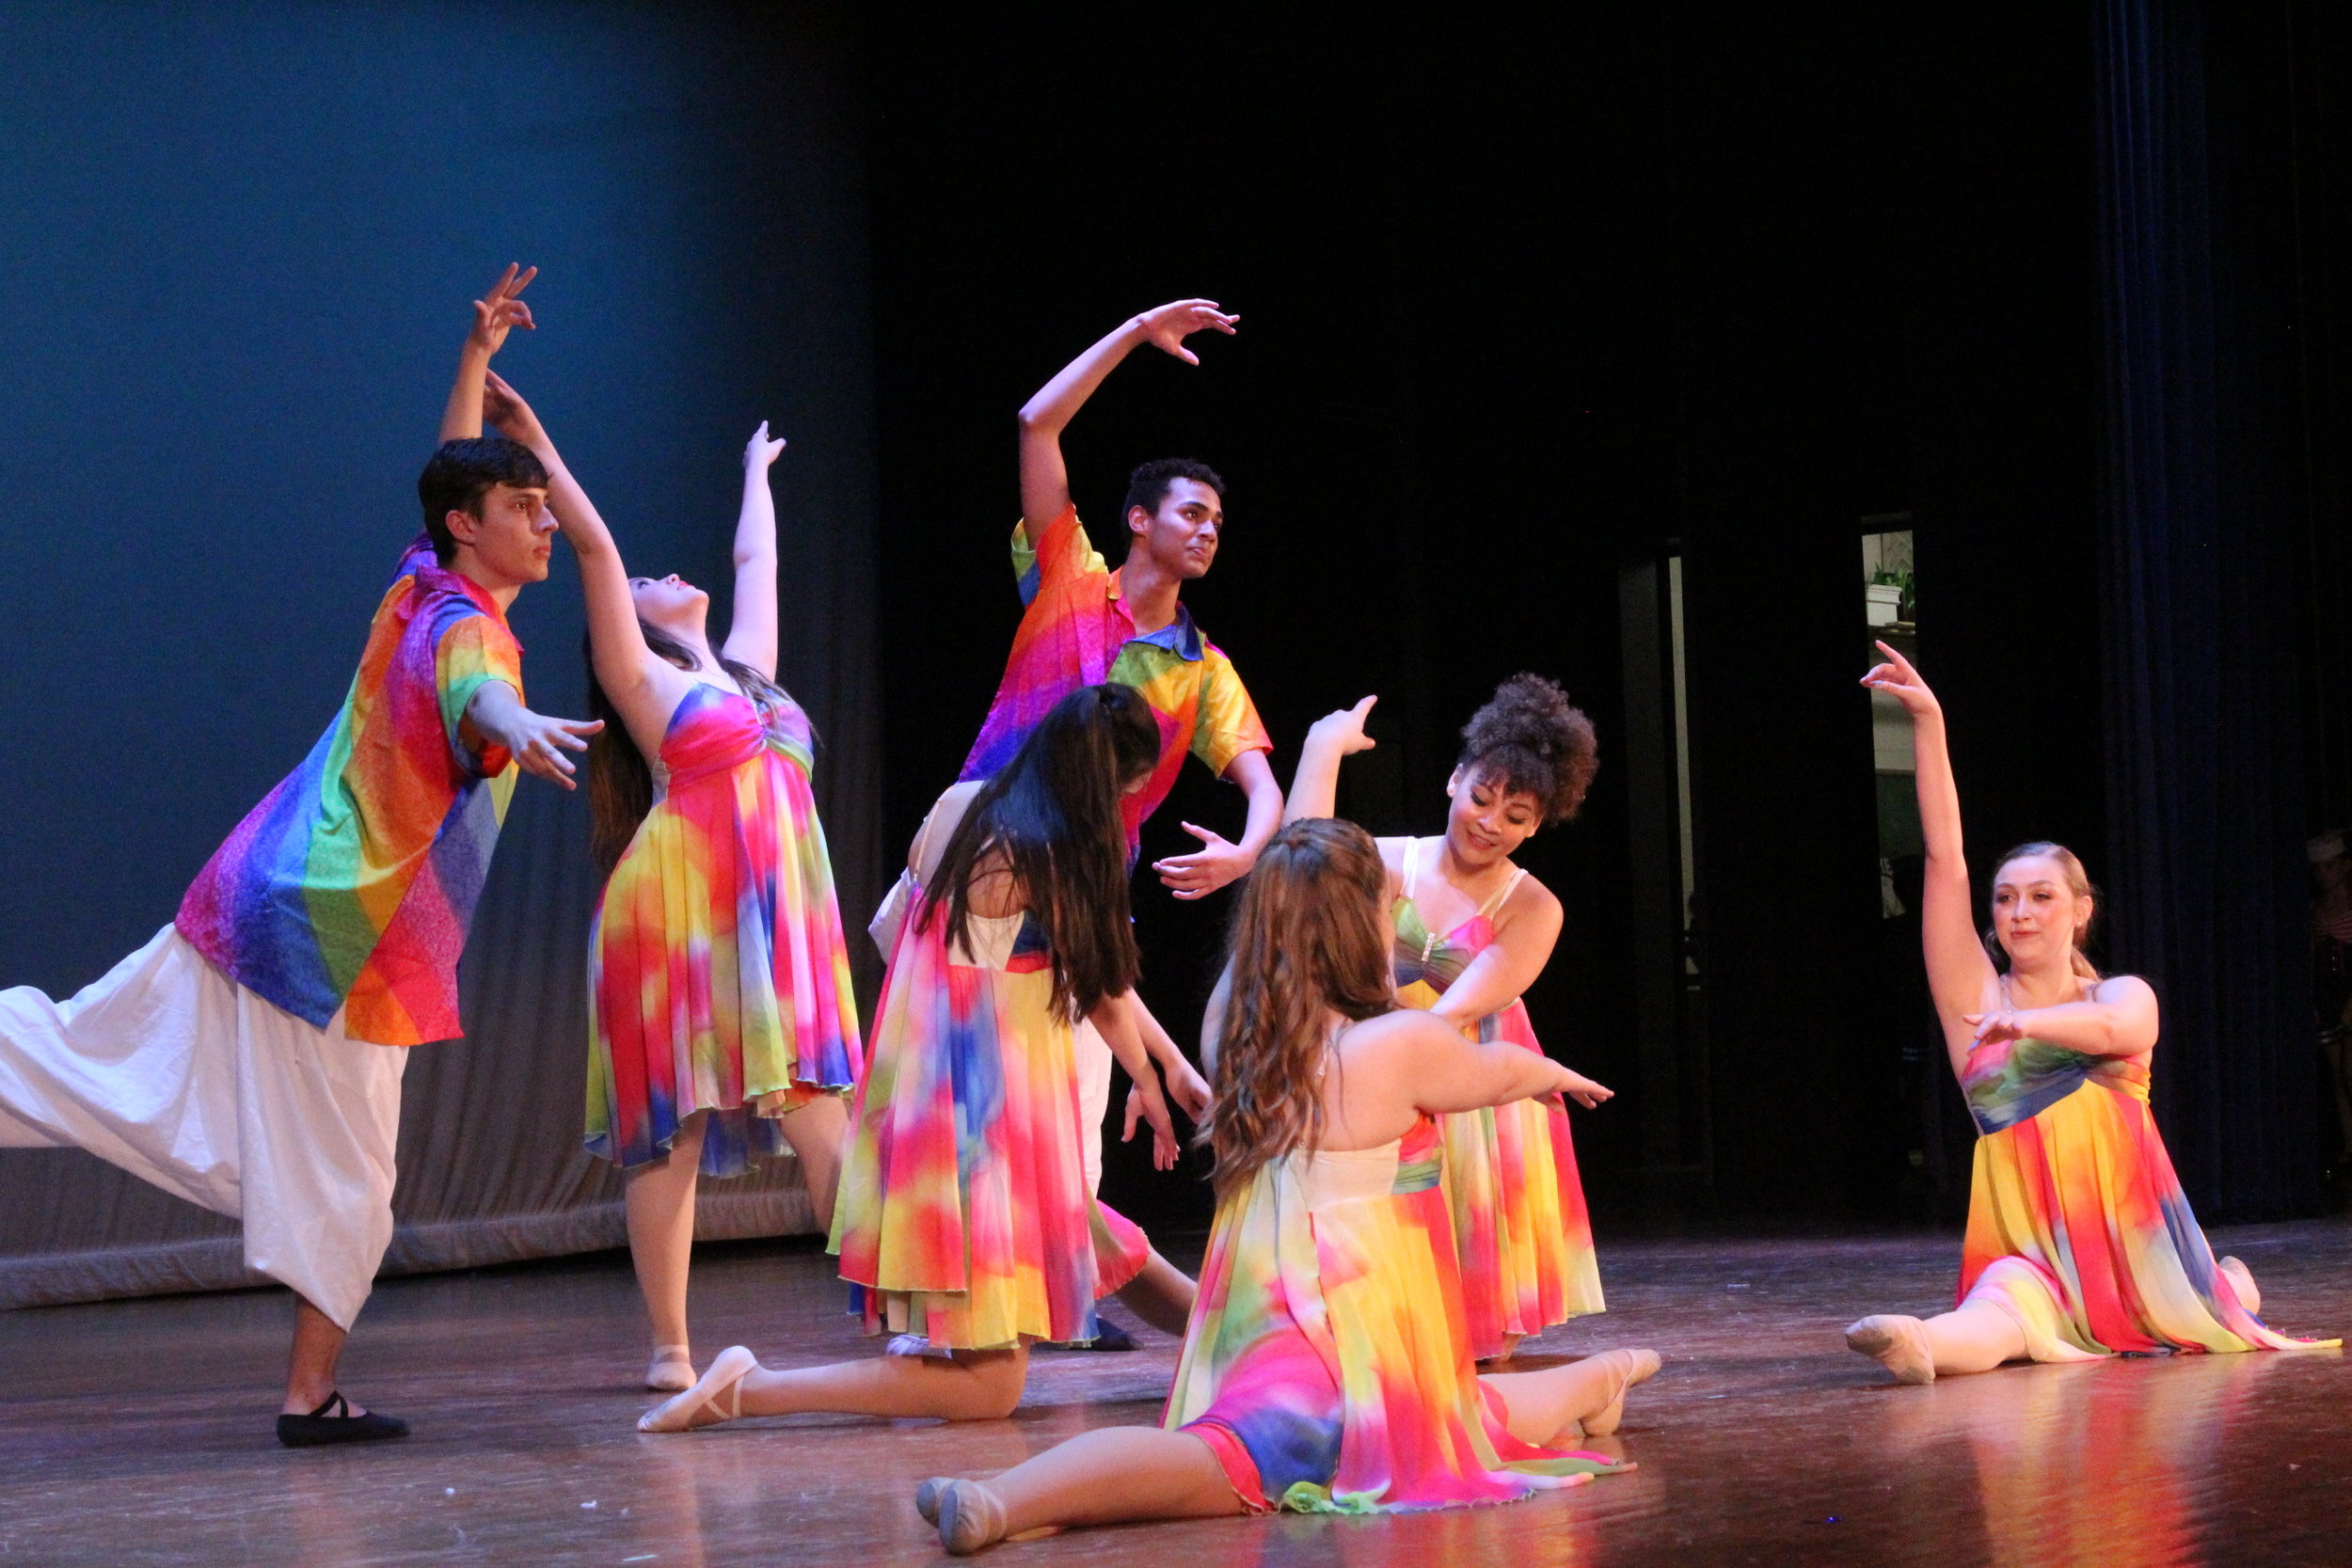 Ballet For Teens - Ages: 12-18Teens will enjoy learning the basics of ballet while developing confidence, mental concentration, physical coordination and grace.